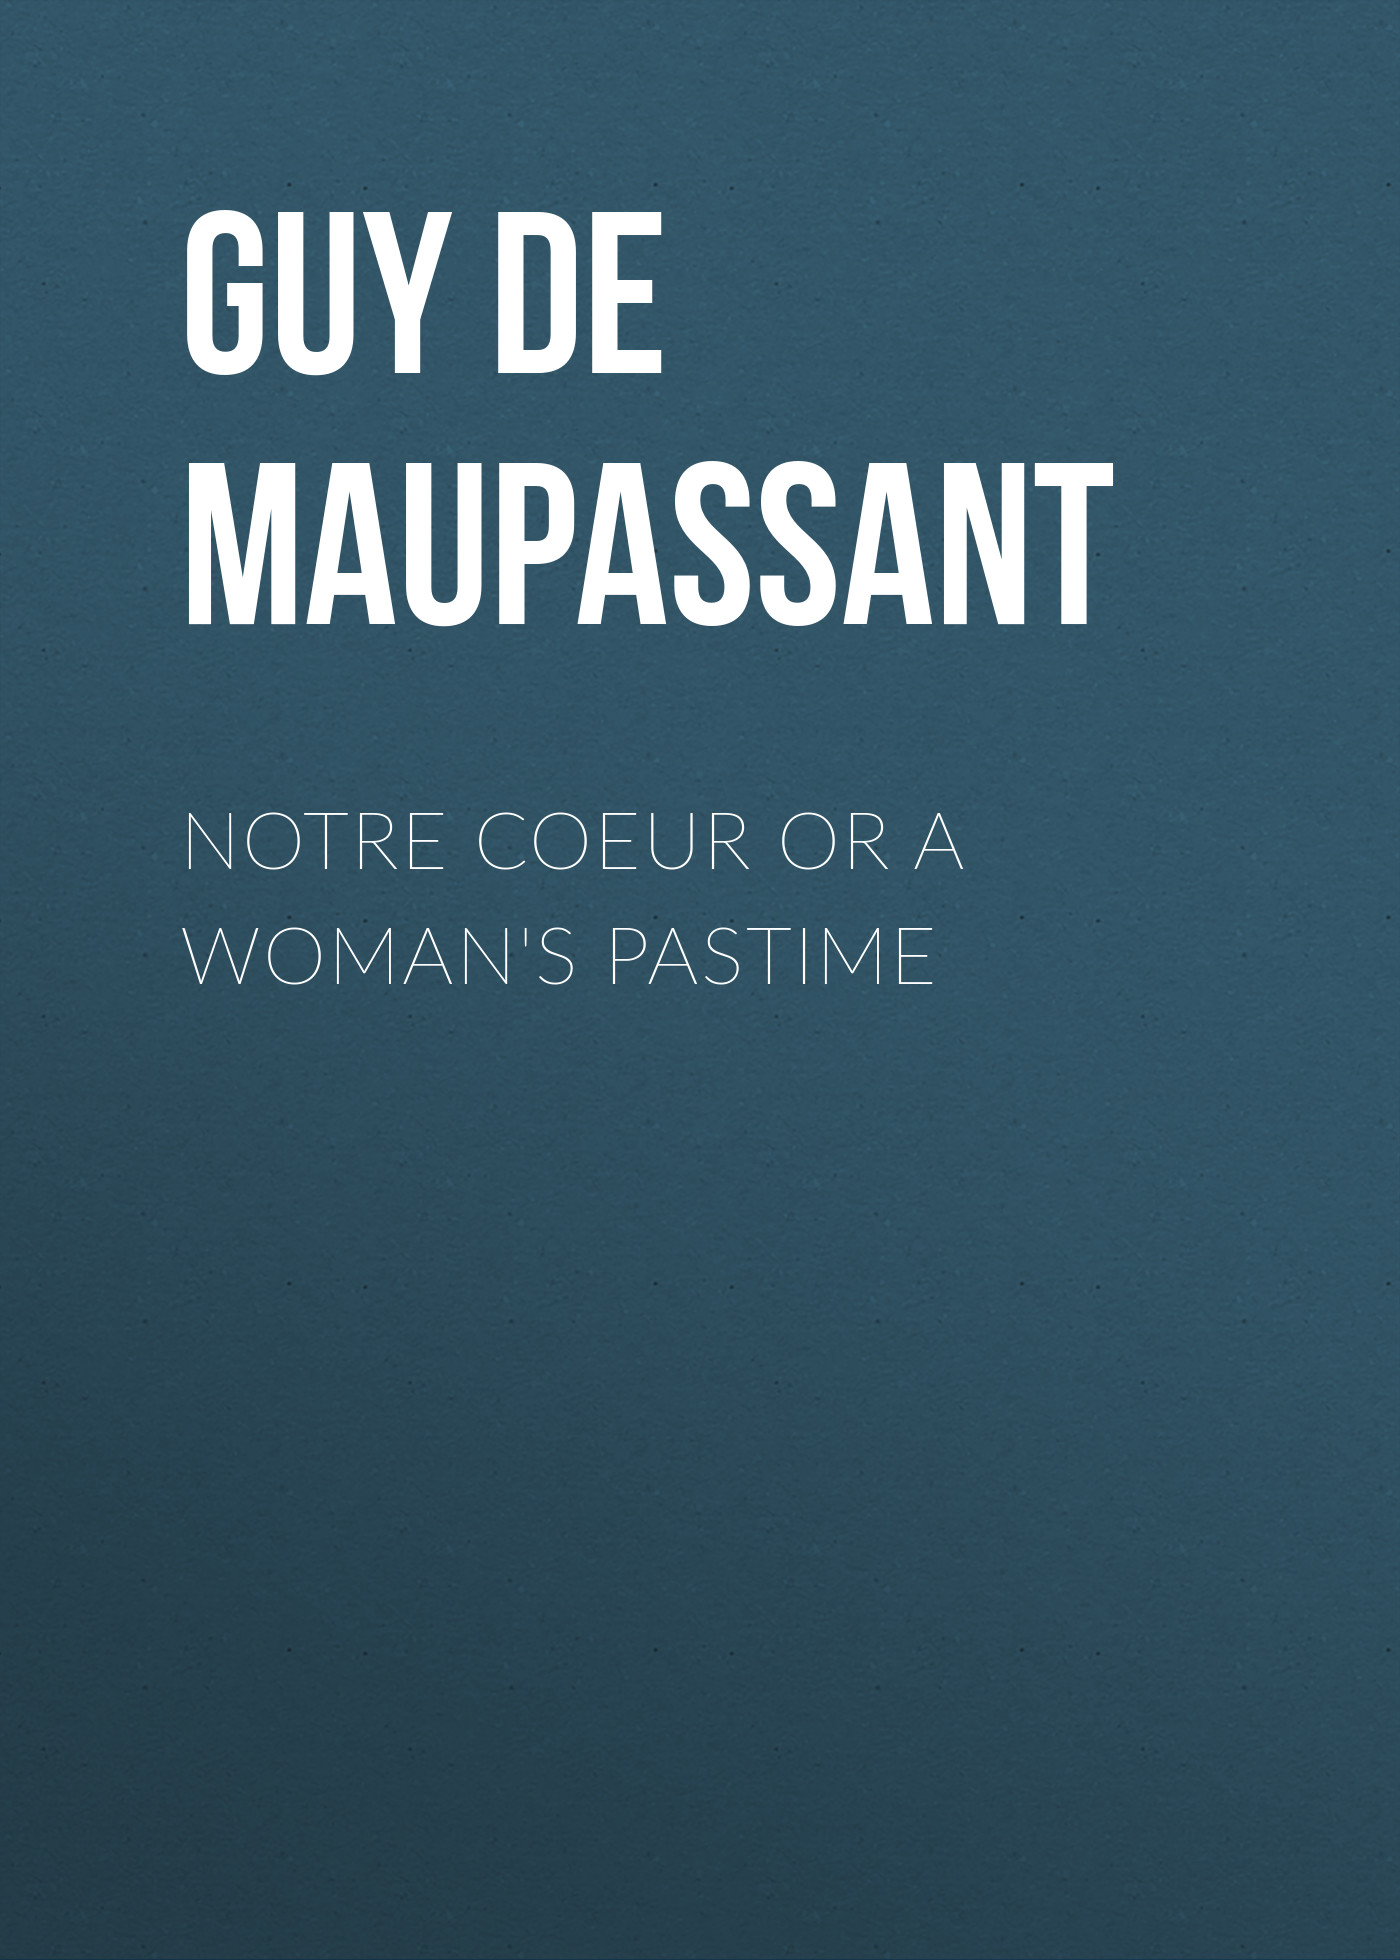 Notre Coeur or A Woman's Pastime